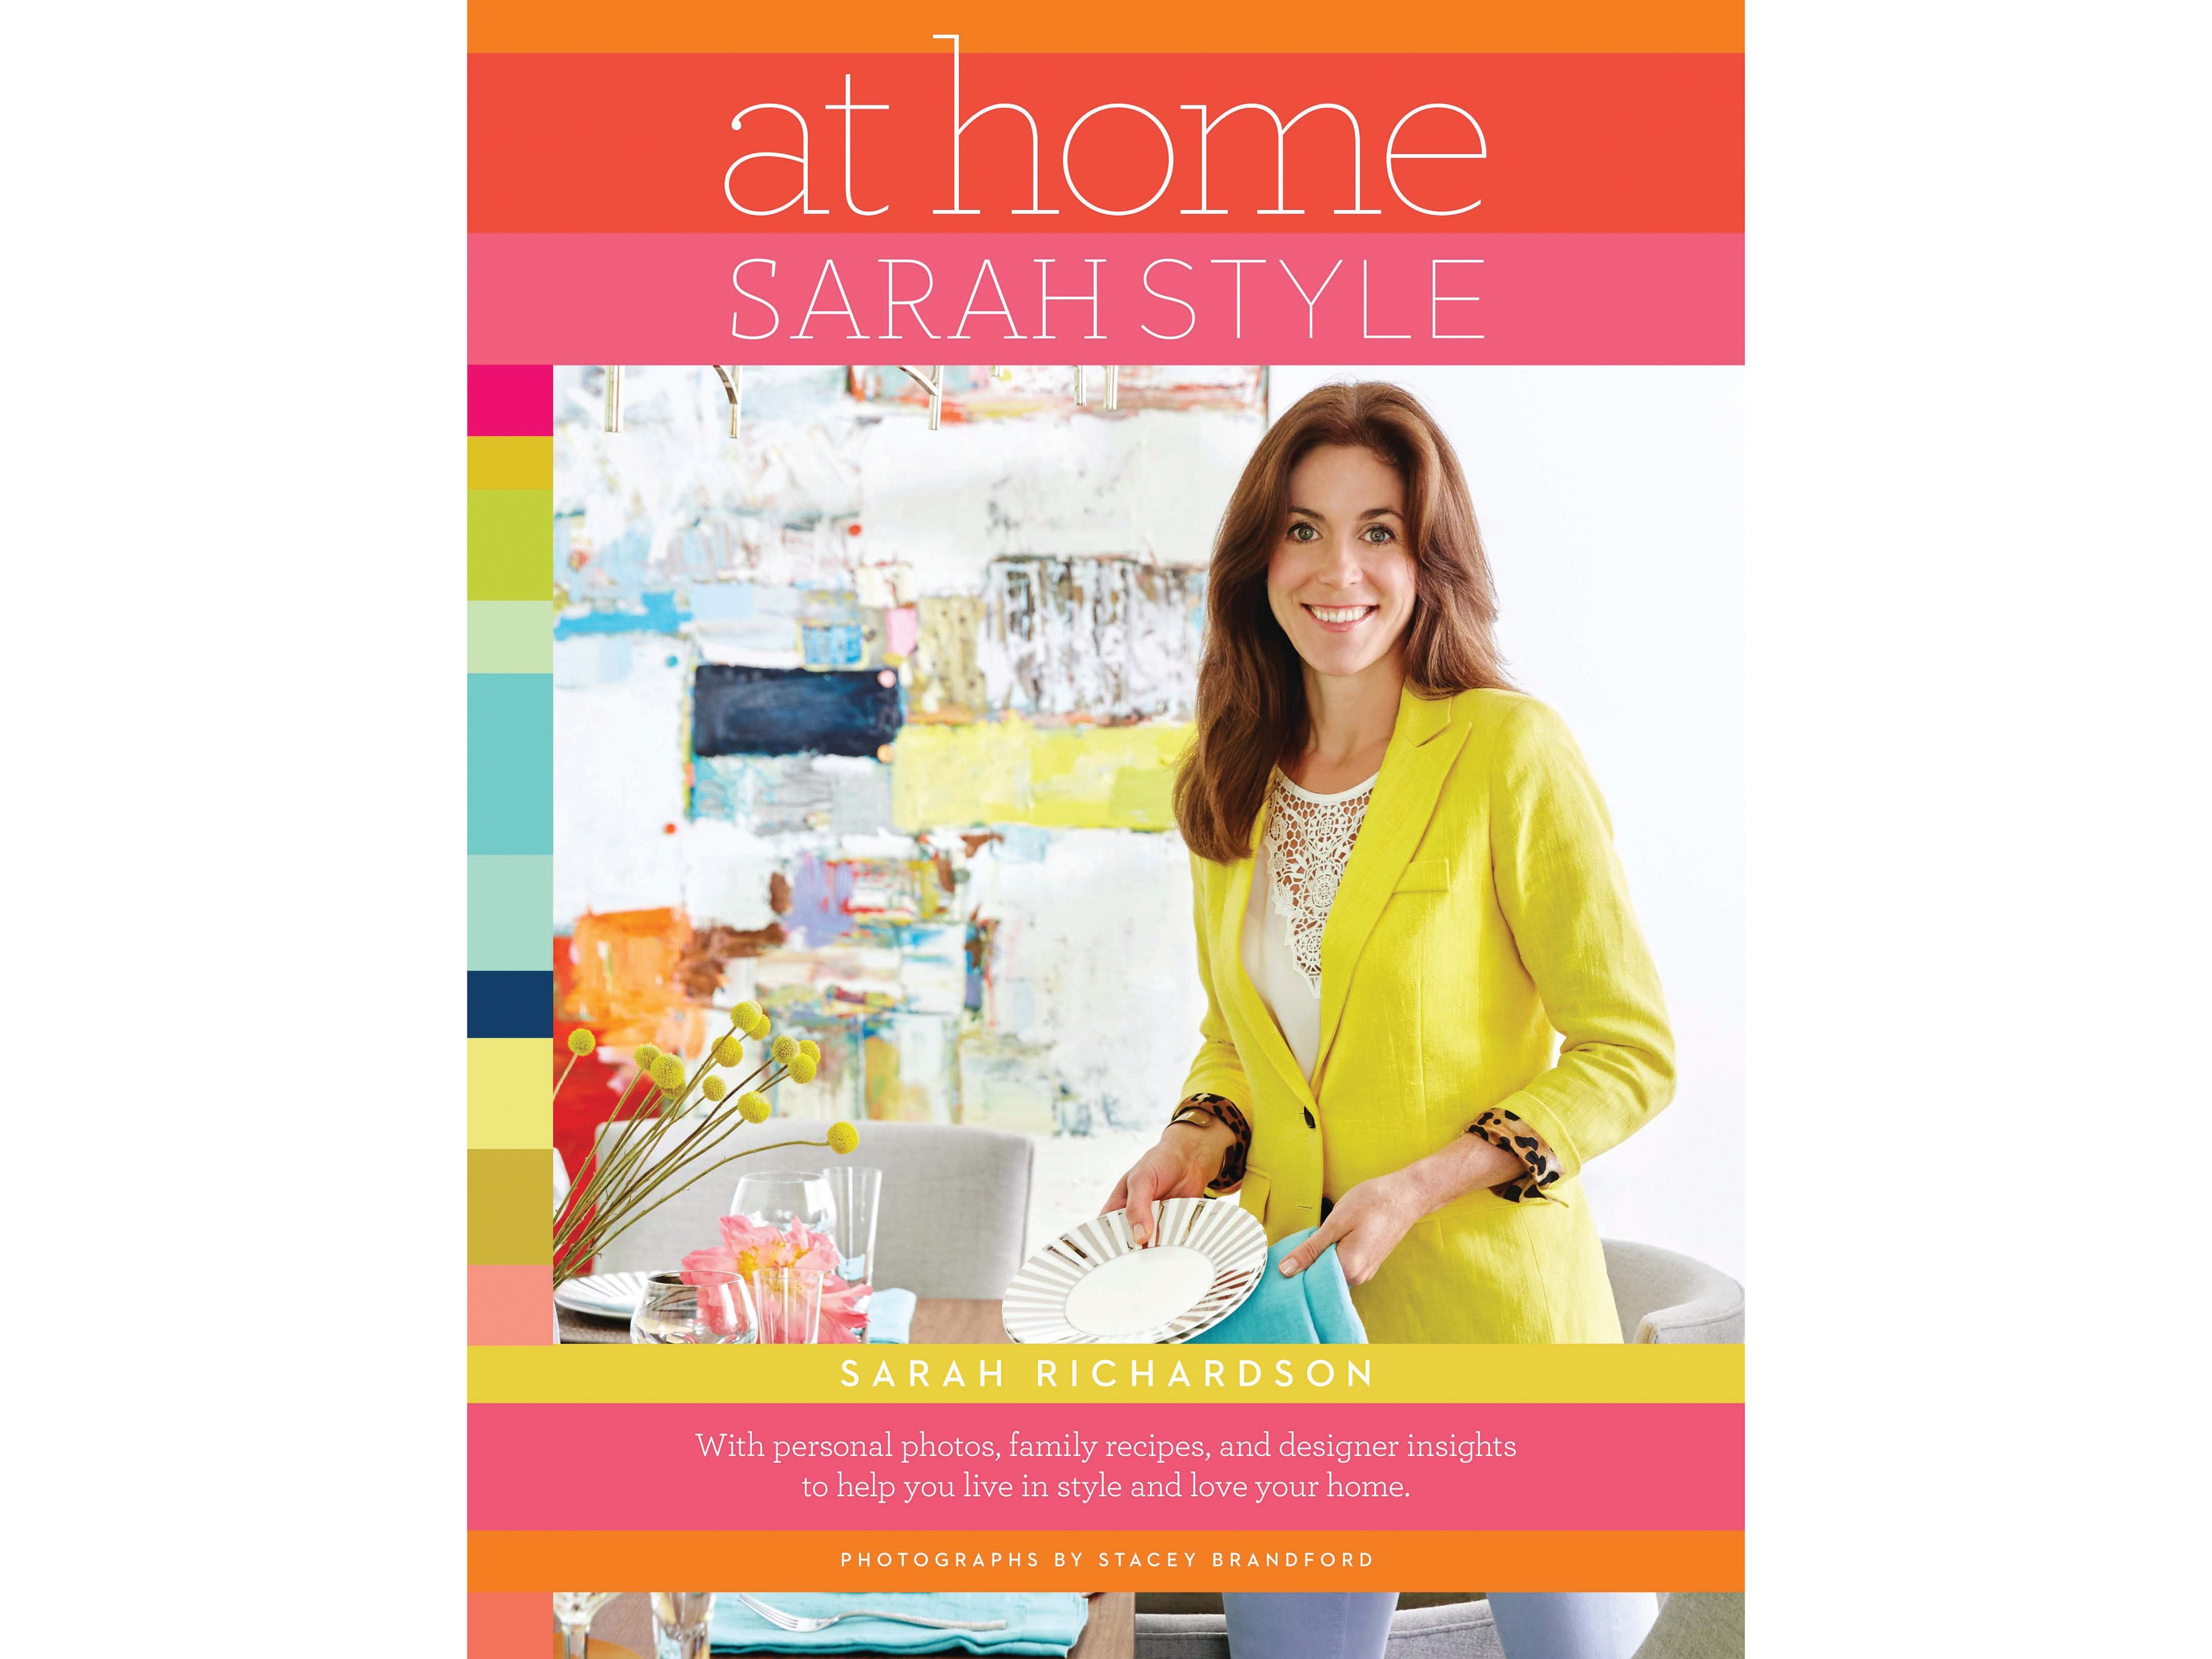 FURTHER READING: At Home: Sarah Style